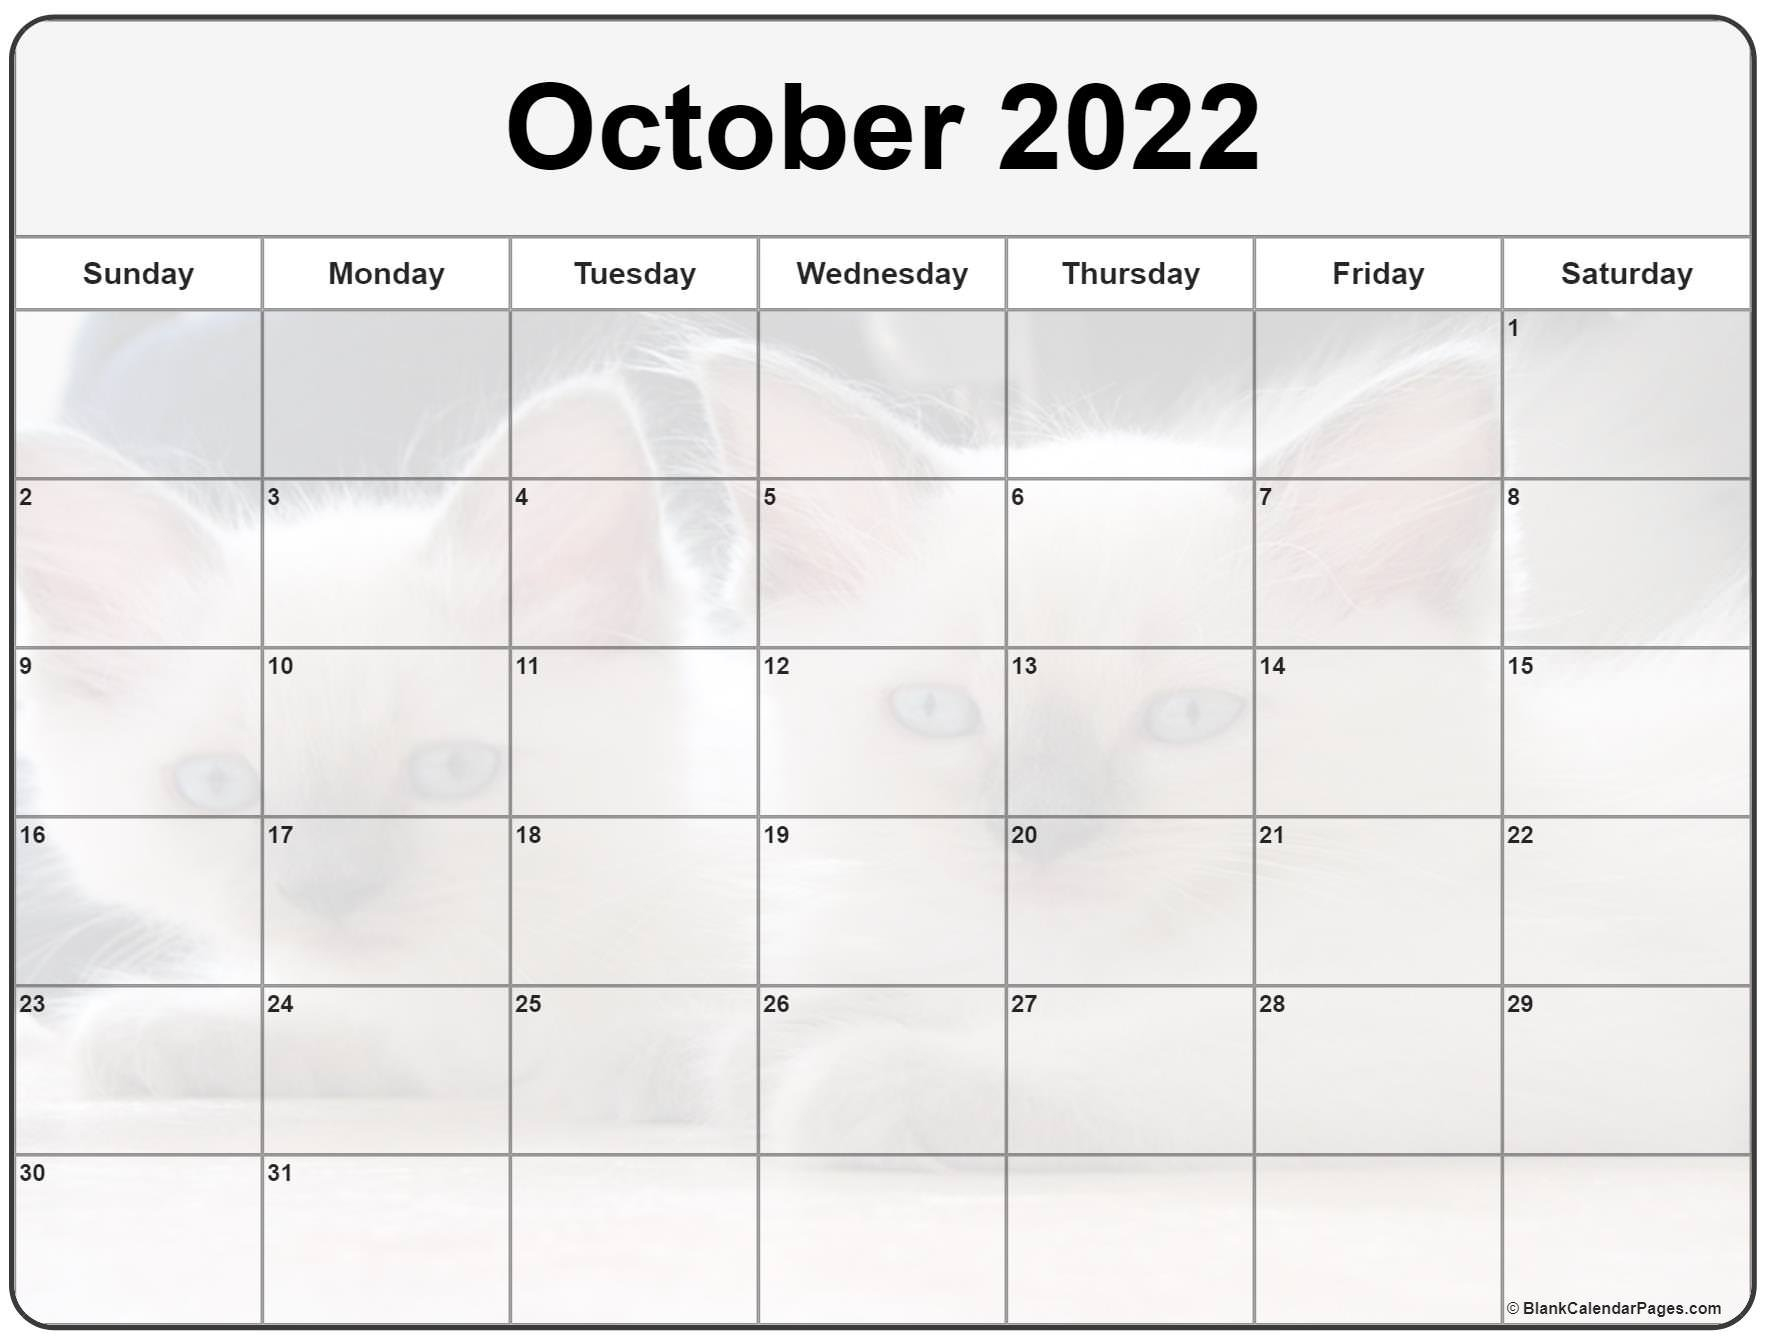 Collection Of October 2022 Photo Calendars With Image Filters. with October 2022 Planner Calendar Graphics